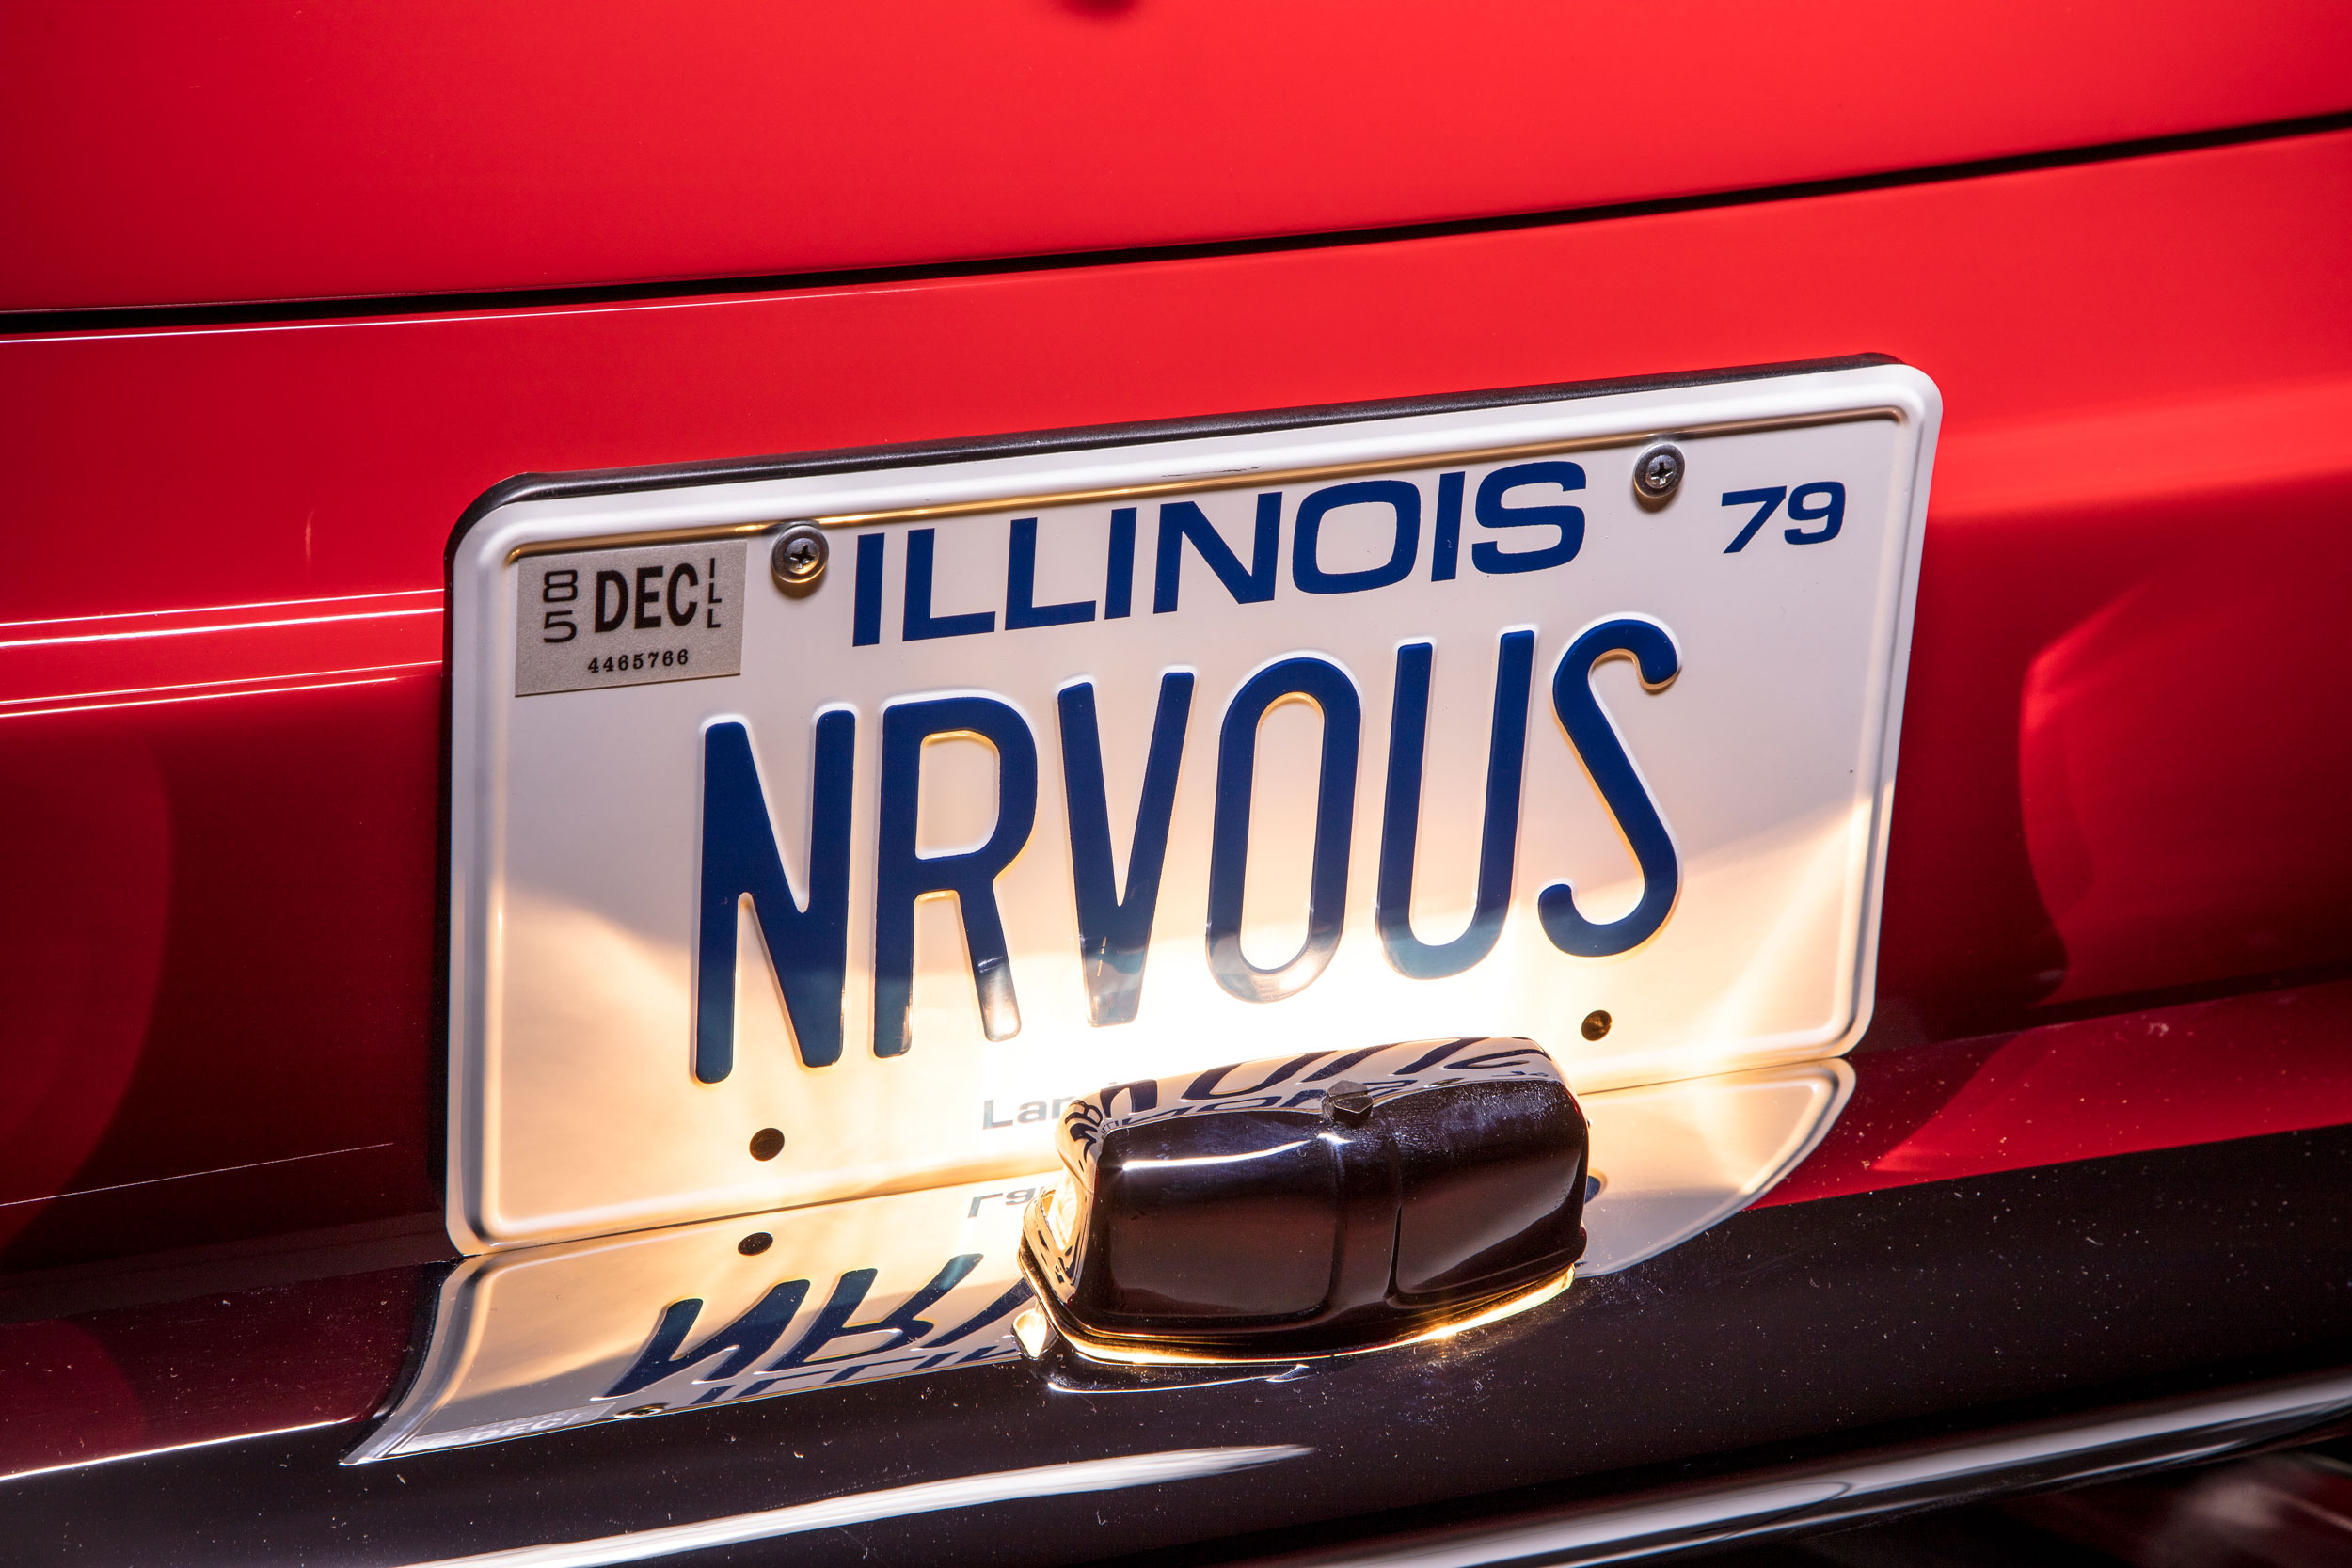 All the license plates in Ferris hint at other Hughes movies, except NRVOUS, which aptly describes Cameron.